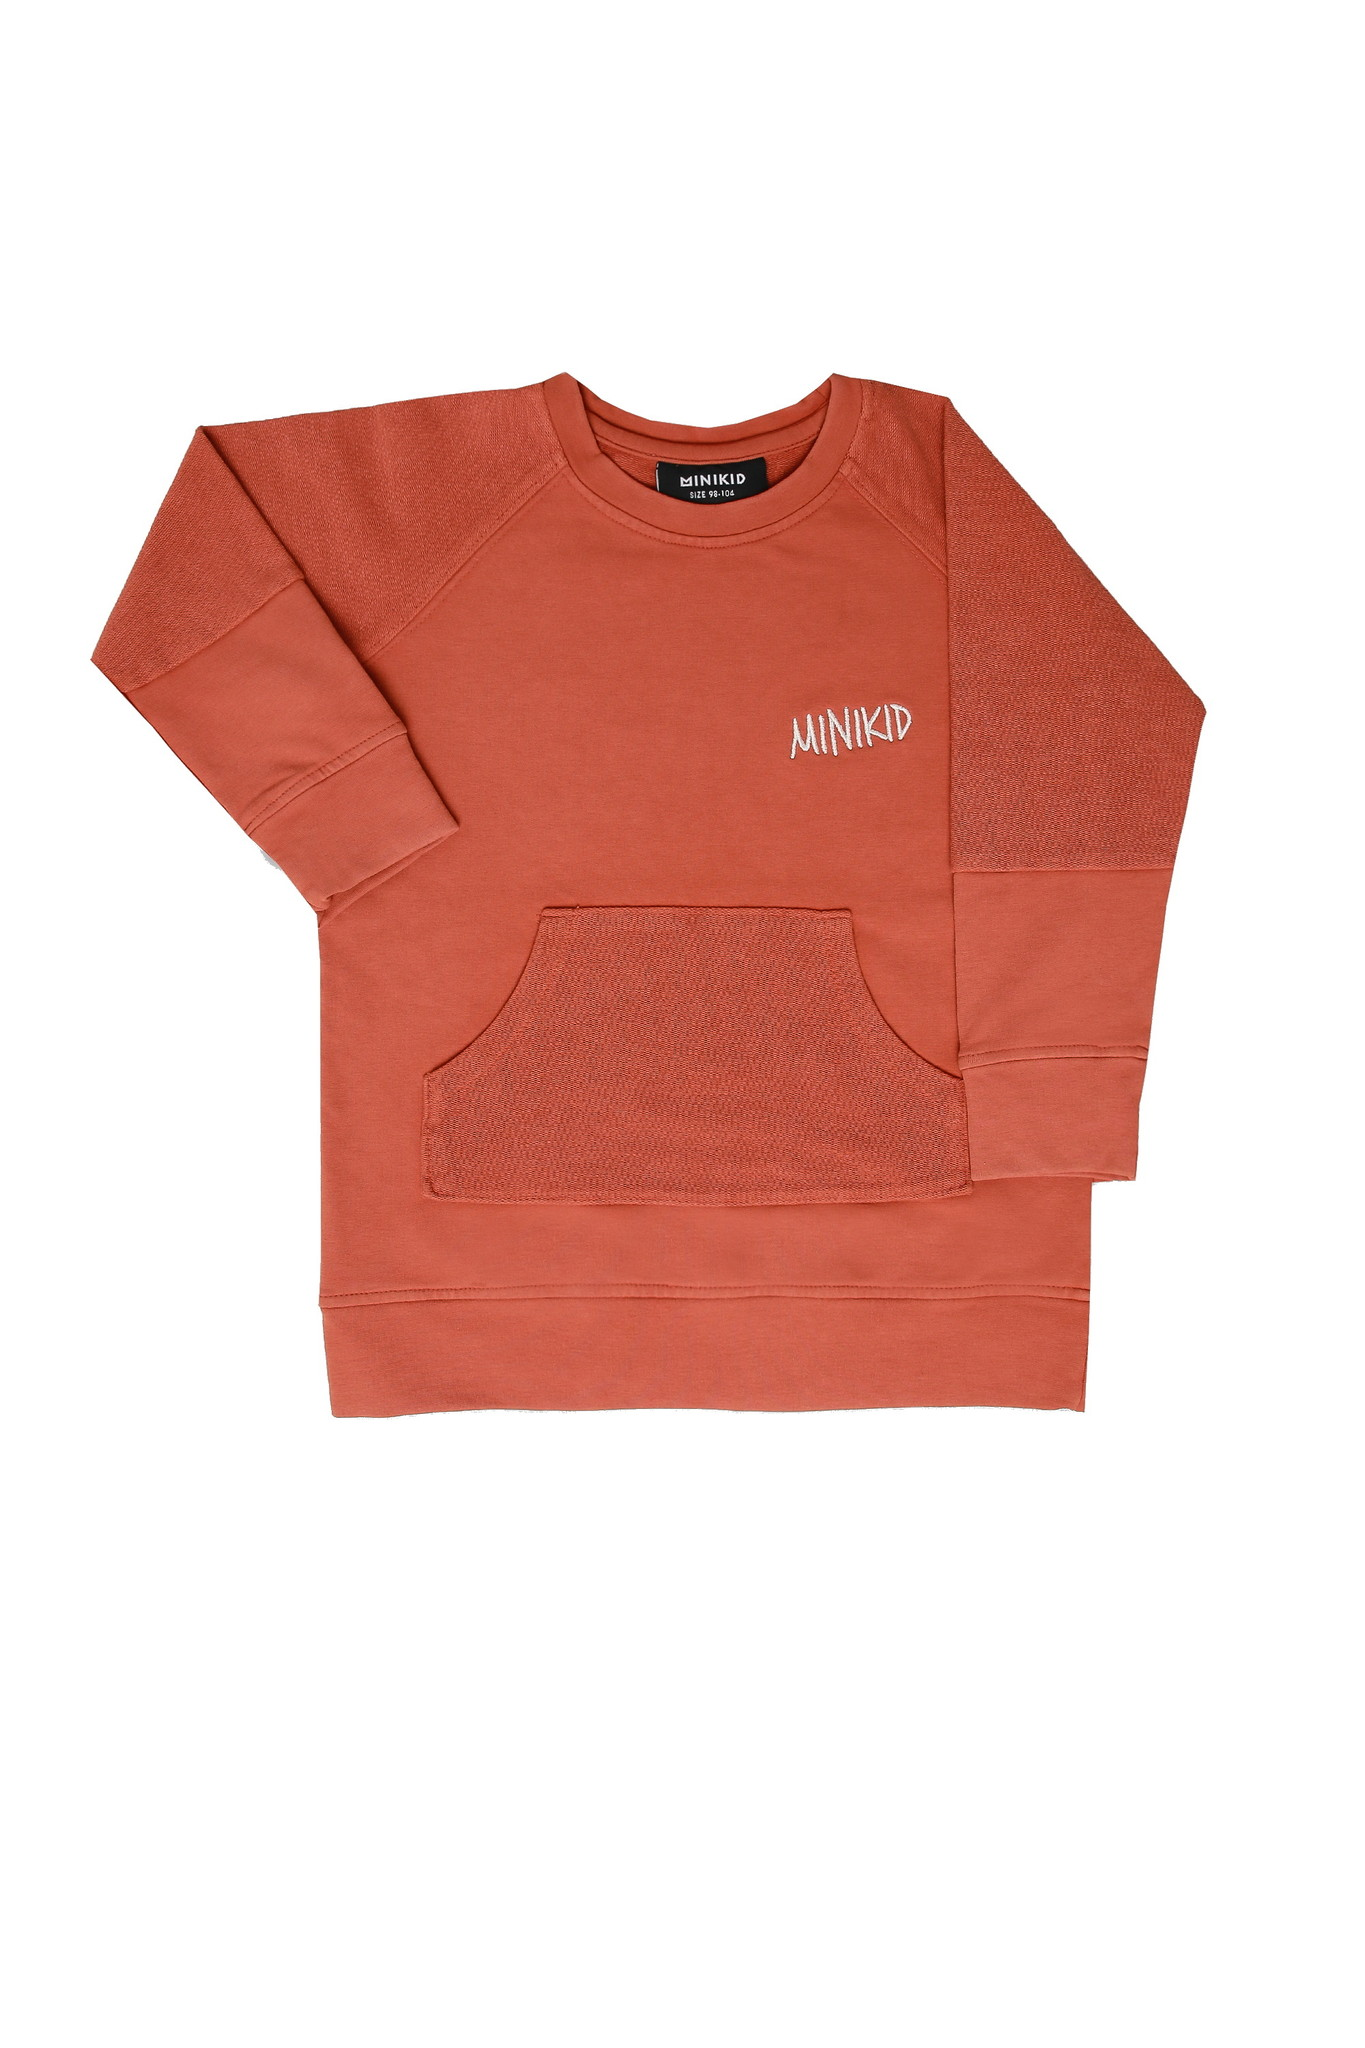 Minikid ORANGE RED SWEATER | UNISEX SWEATER WITH FRONT POCKET | MINIKID